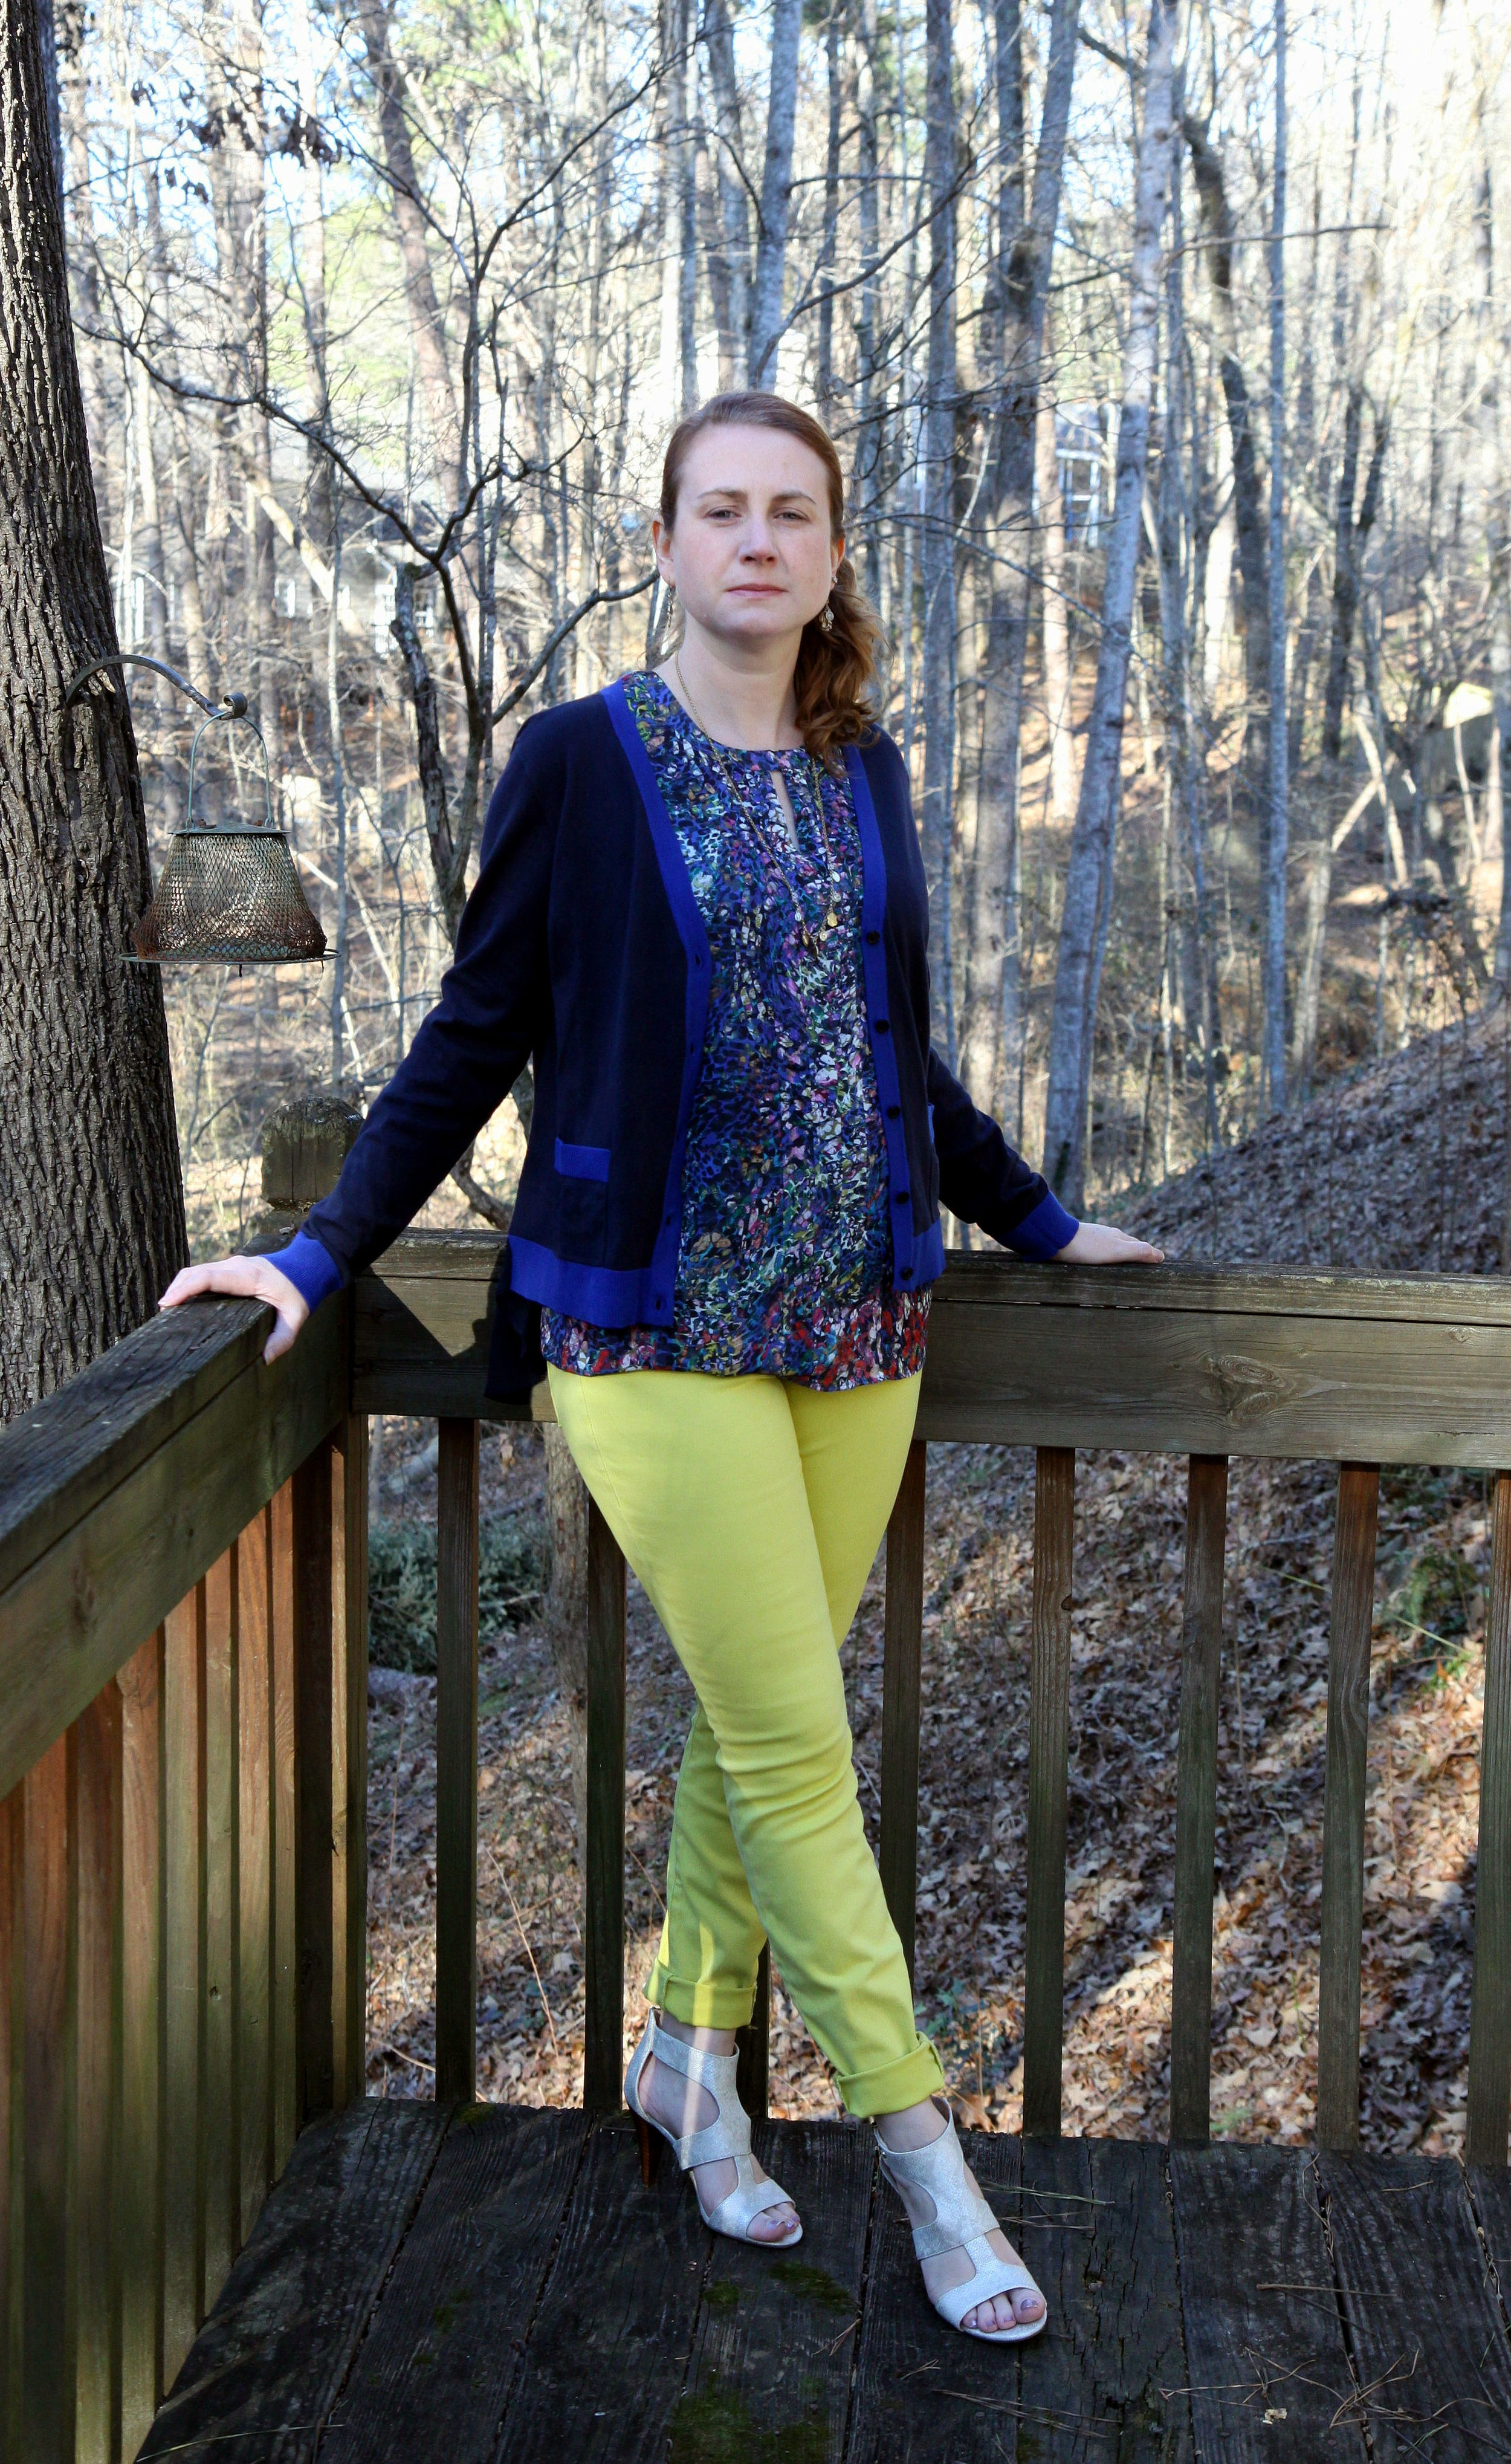 Outfit: Stained Glass Blouse from cabi Fall 2015.  Citron Curvy Skinny  jean (also available in  regular ),  Michelle Cardigan ,  Dolce Charm Earrings , and  Dolce Charm Necklace   from cabi Spring 2016. With the  Unisa Eavvi Sandal  sold at DSW.